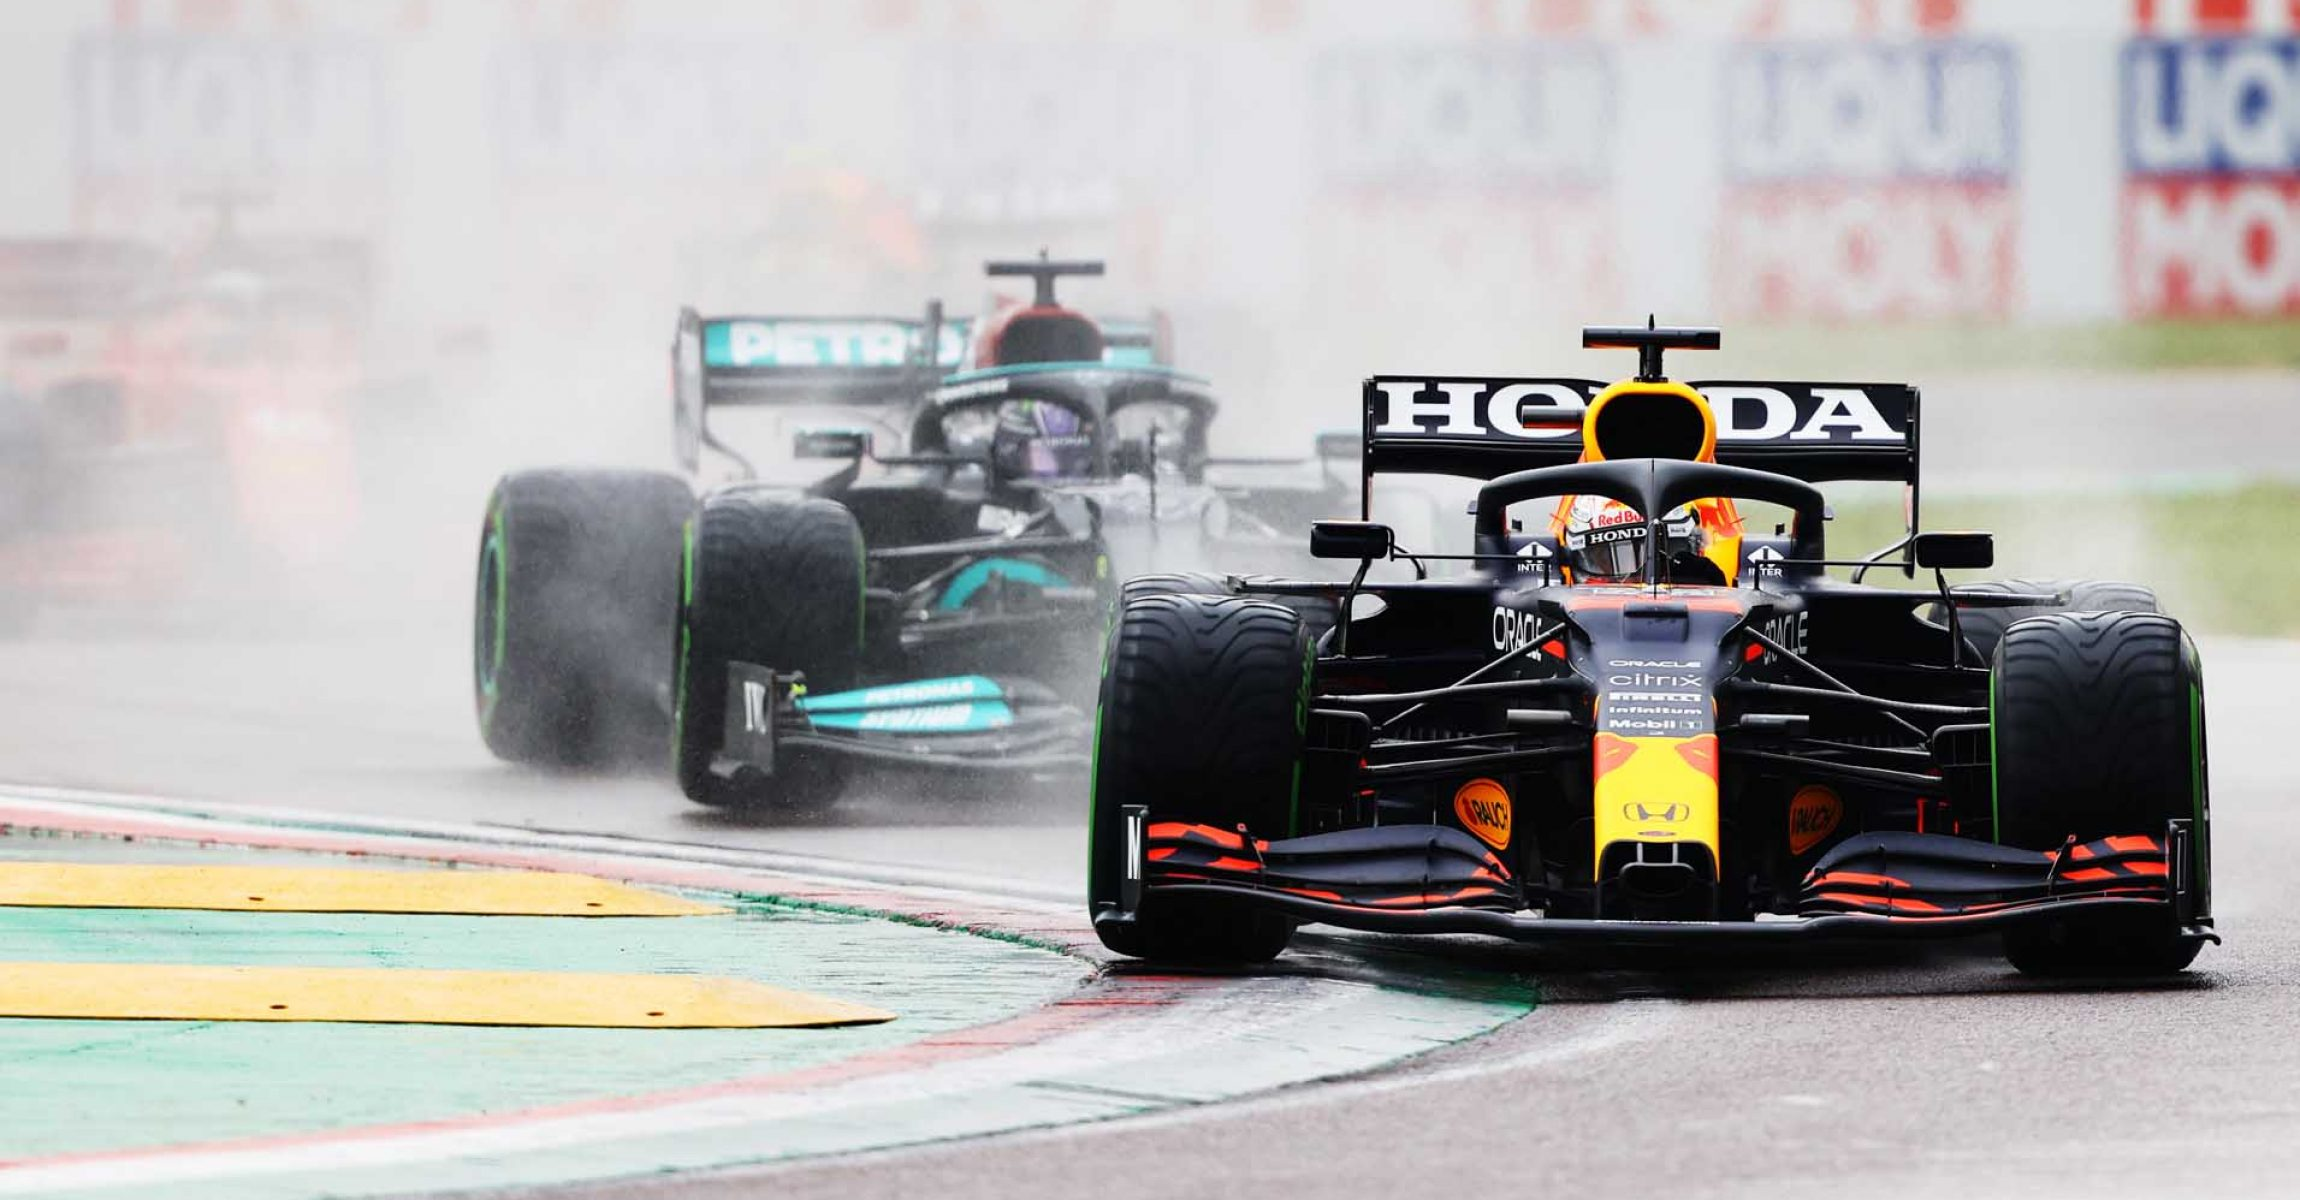 IMOLA, ITALY - APRIL 18: Max Verstappen of the Netherlands driving the (33) Red Bull Racing RB16B Honda on track during the F1 Grand Prix of Emilia Romagna at Autodromo Enzo e Dino Ferrari on April 18, 2021 in Imola, Italy. (Photo by Bryn Lennon/Getty Images)